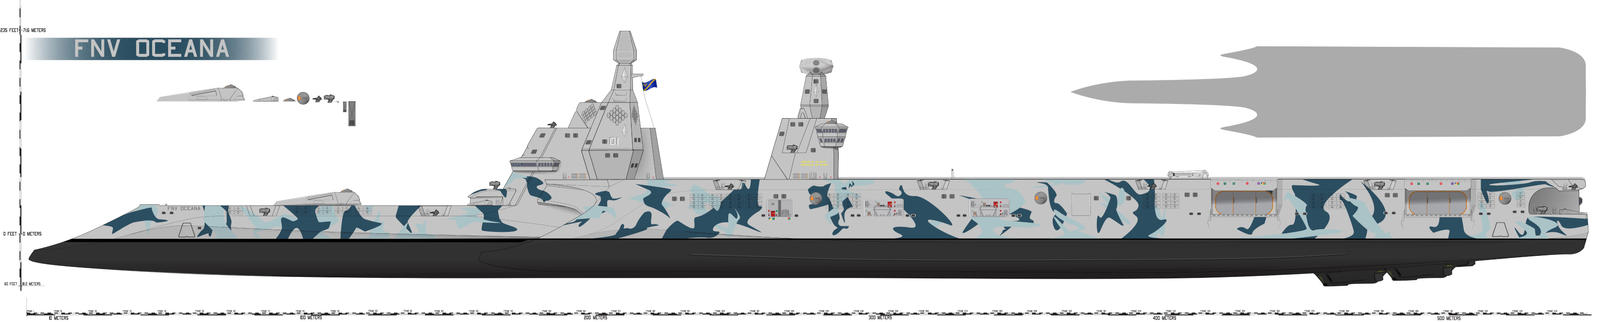 Oceana-class [COMMISSION] by Afterskies